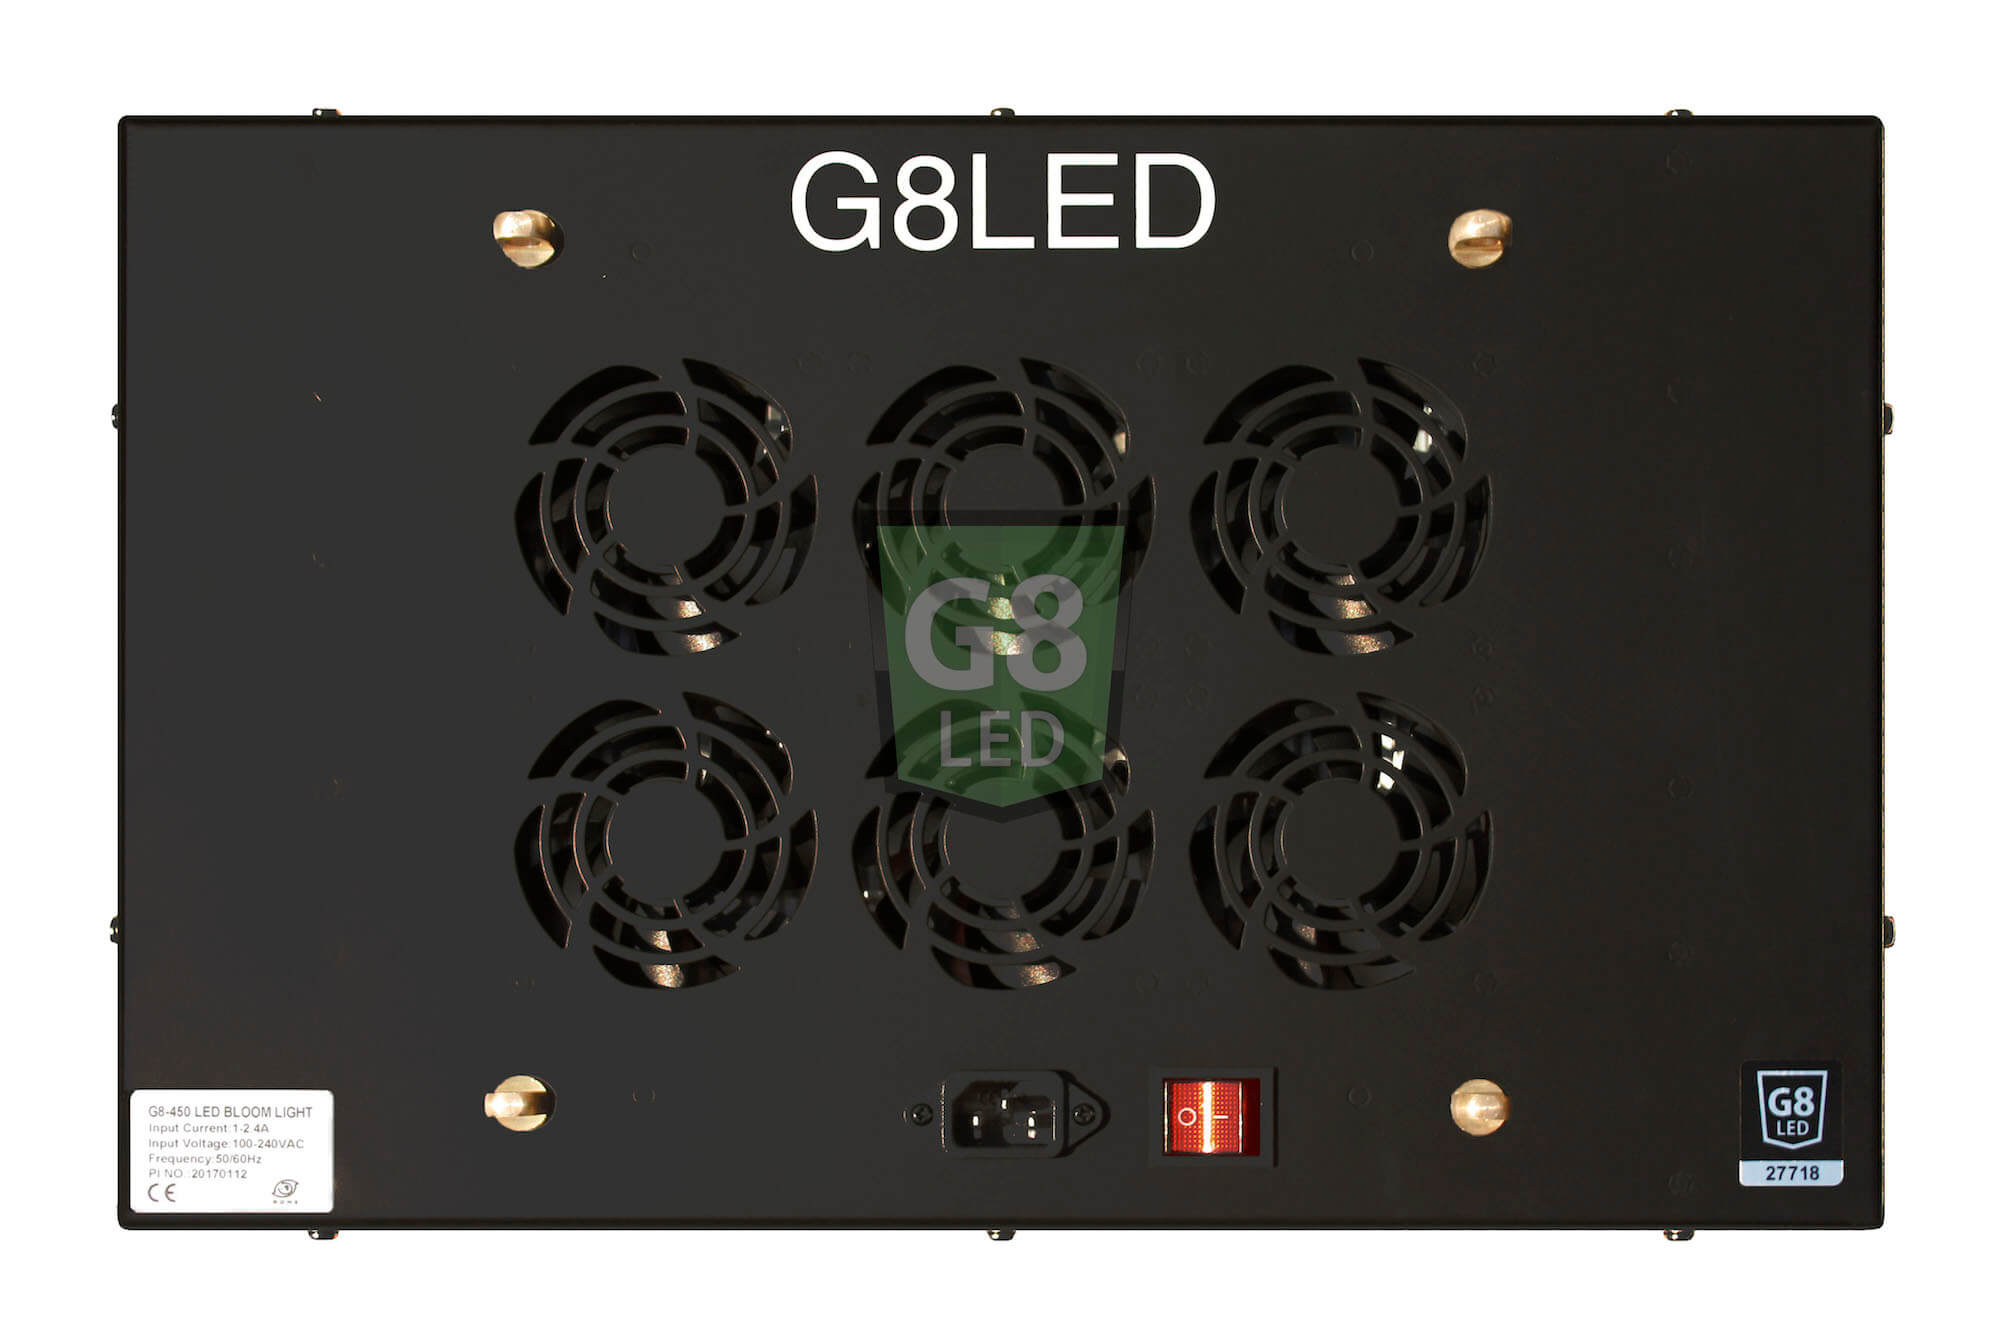 G8LED 450 Watt LED BLOOM Only Light